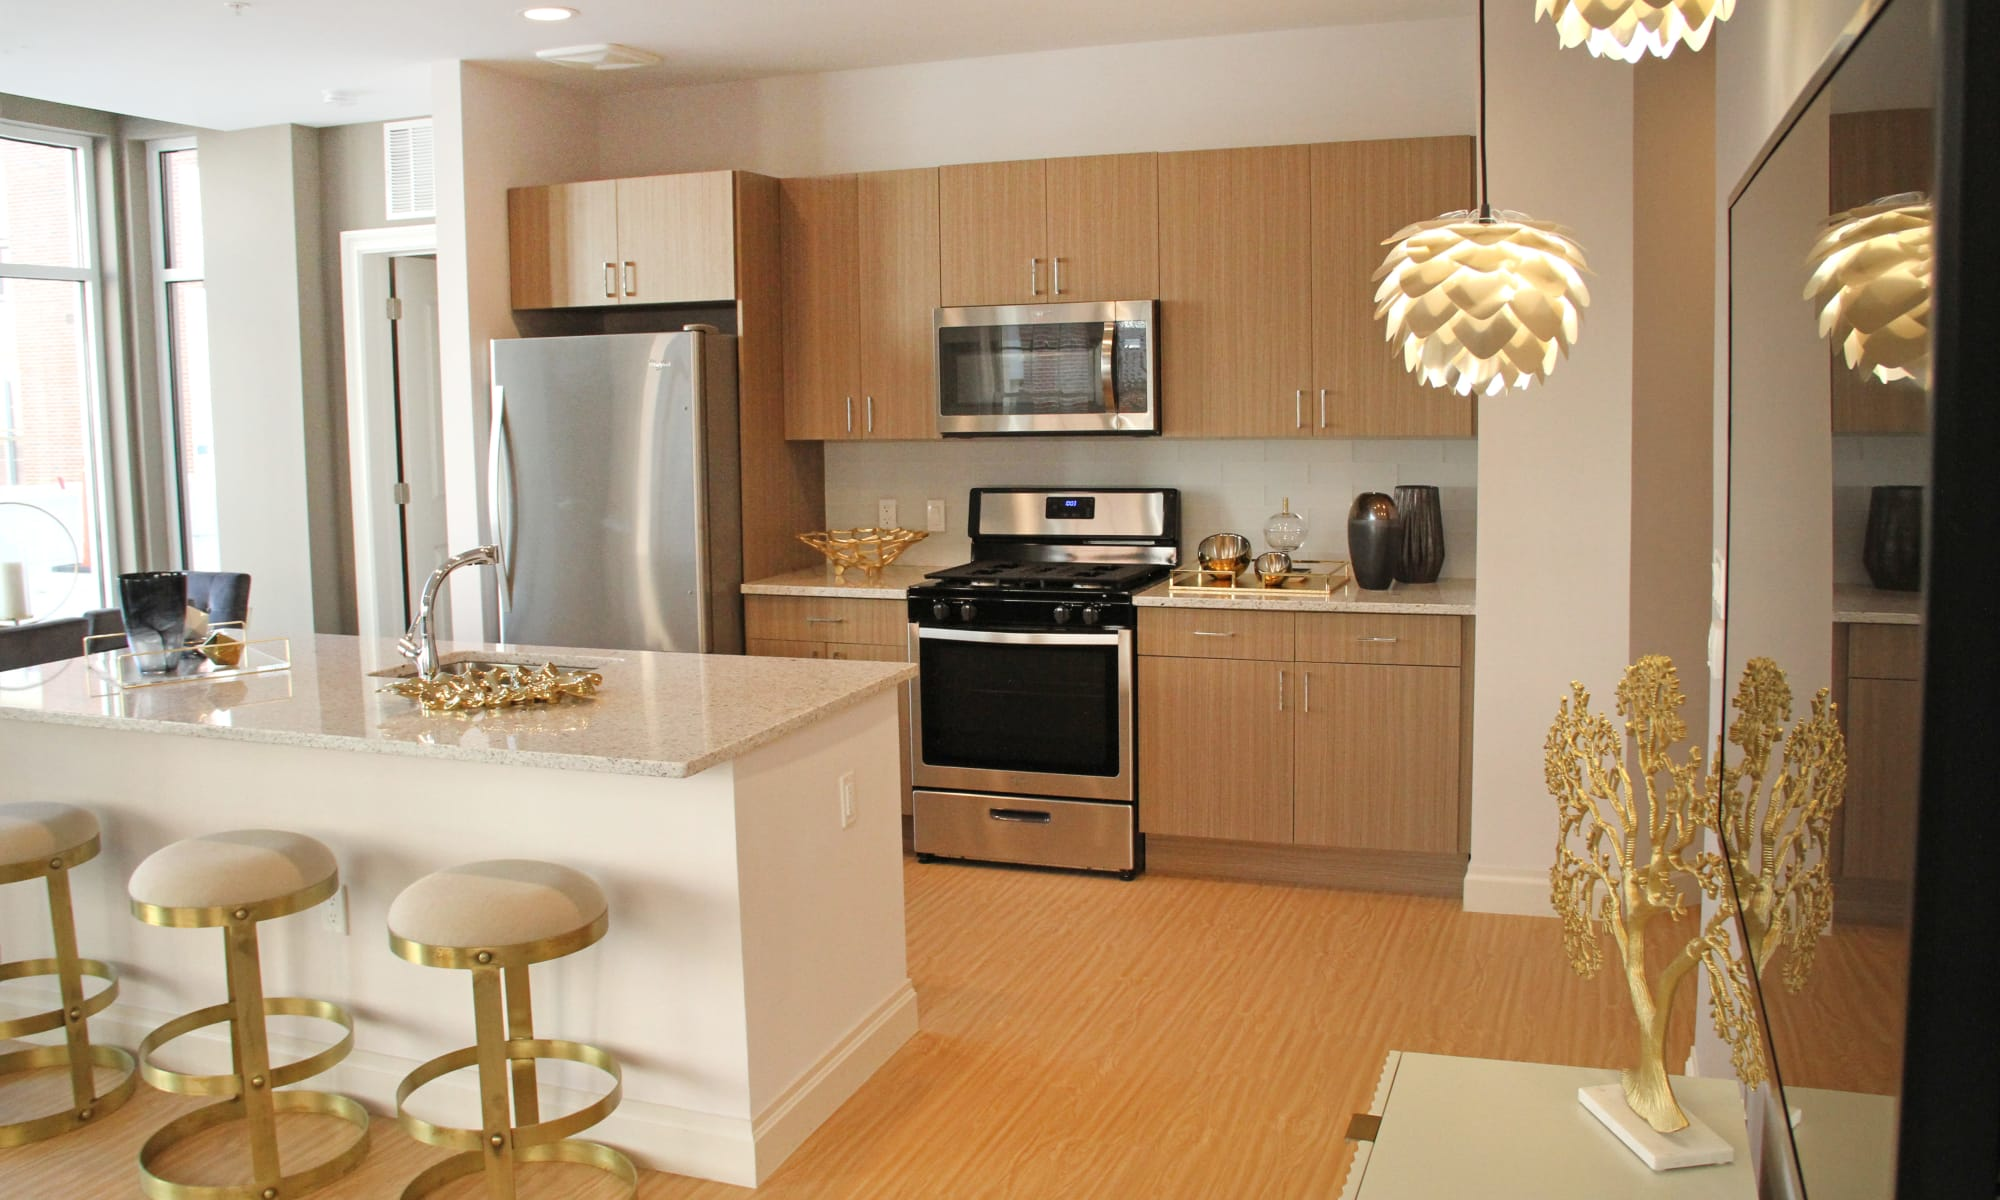 Kitchen in model home at The Harper at Harmon Meadow